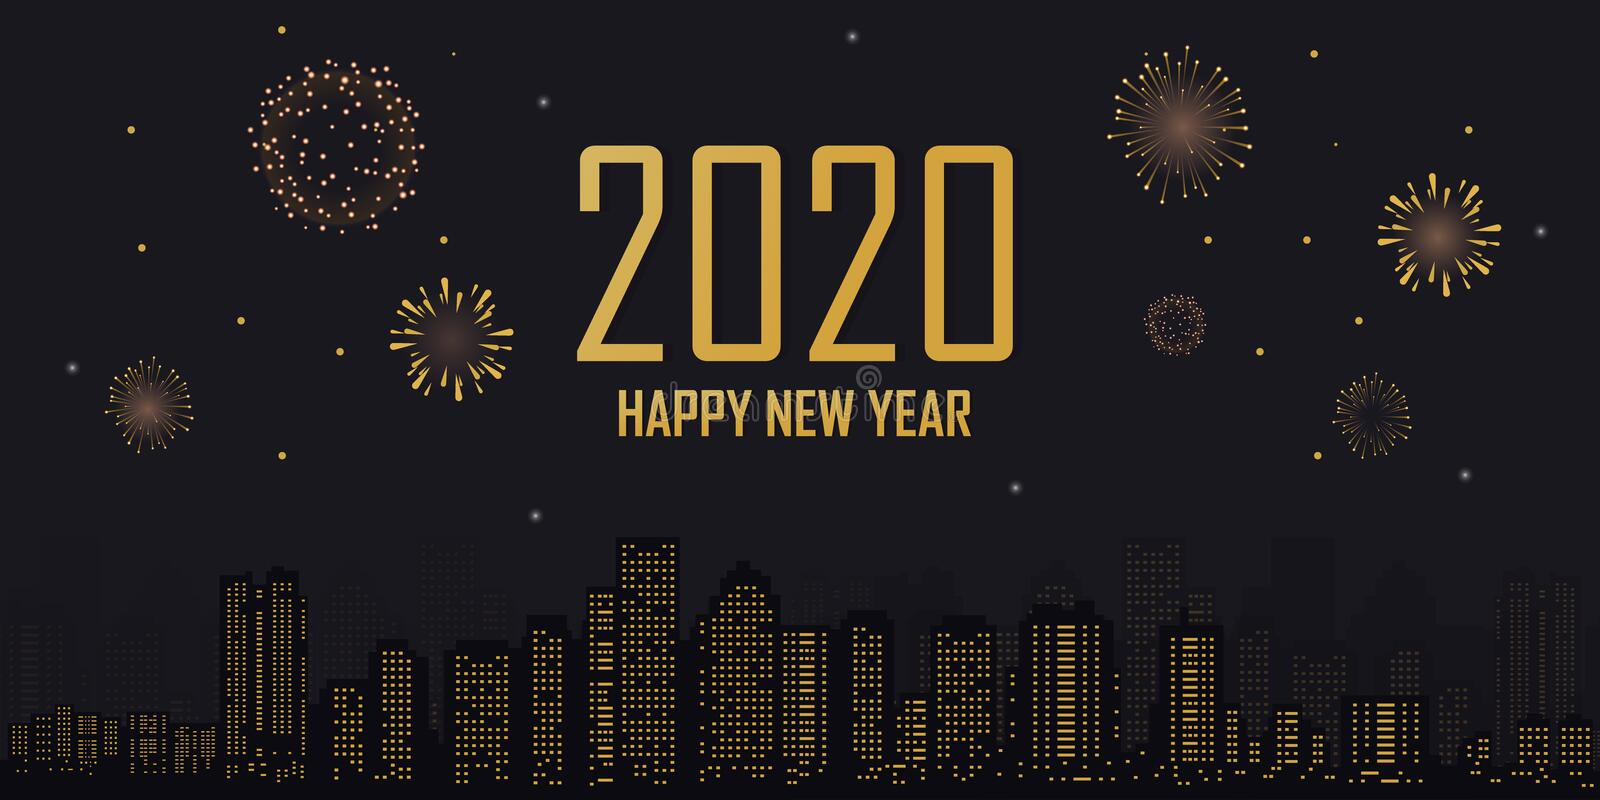 Happy new year 2020 city background with fireworks in the night stock photography